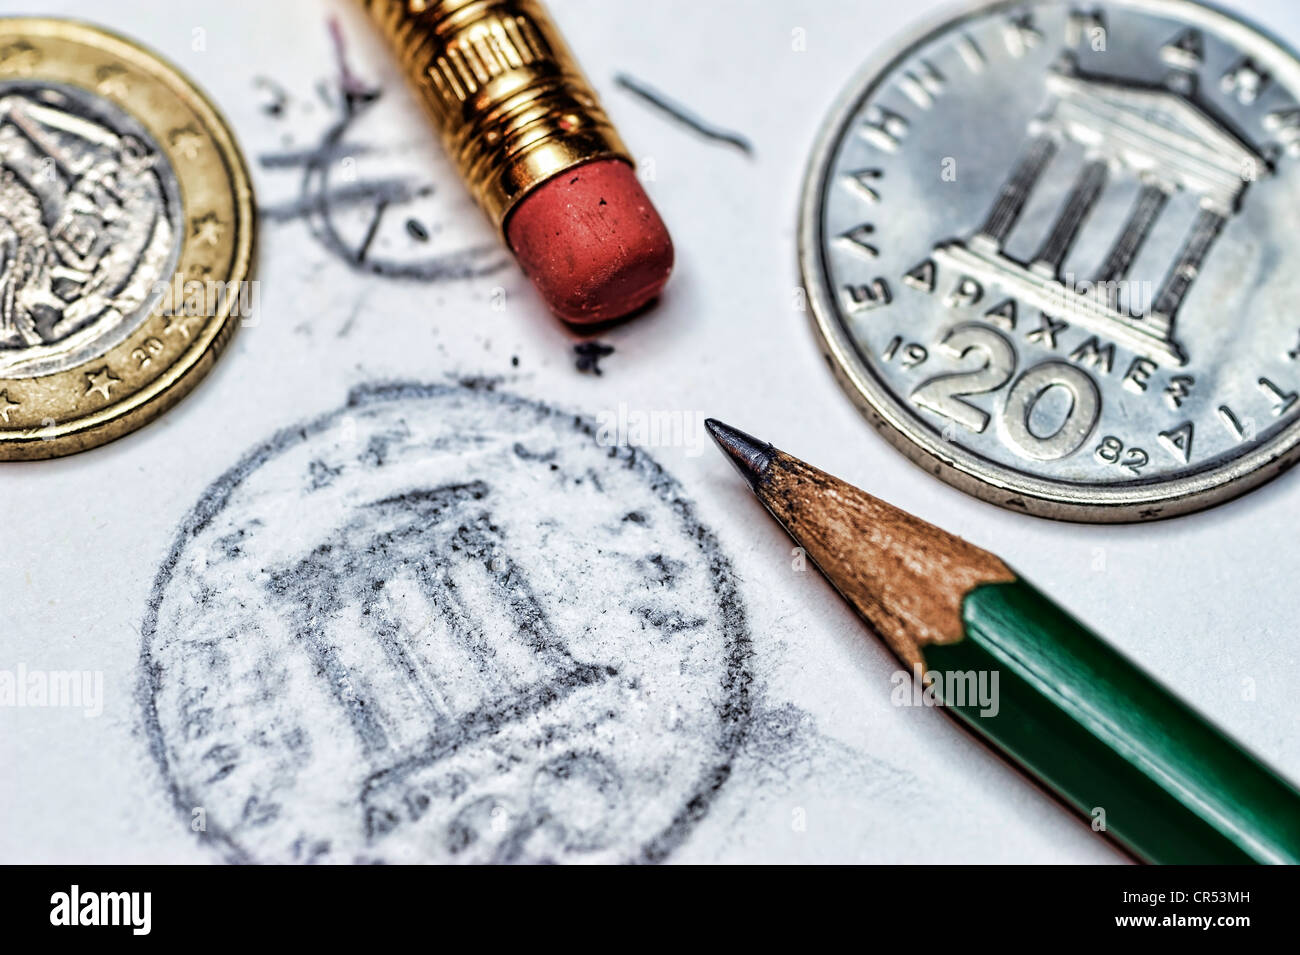 Greek drachmas and an erased euro symbol, symbolic image of the possible discontinuation of the euro in Greece - Stock Image